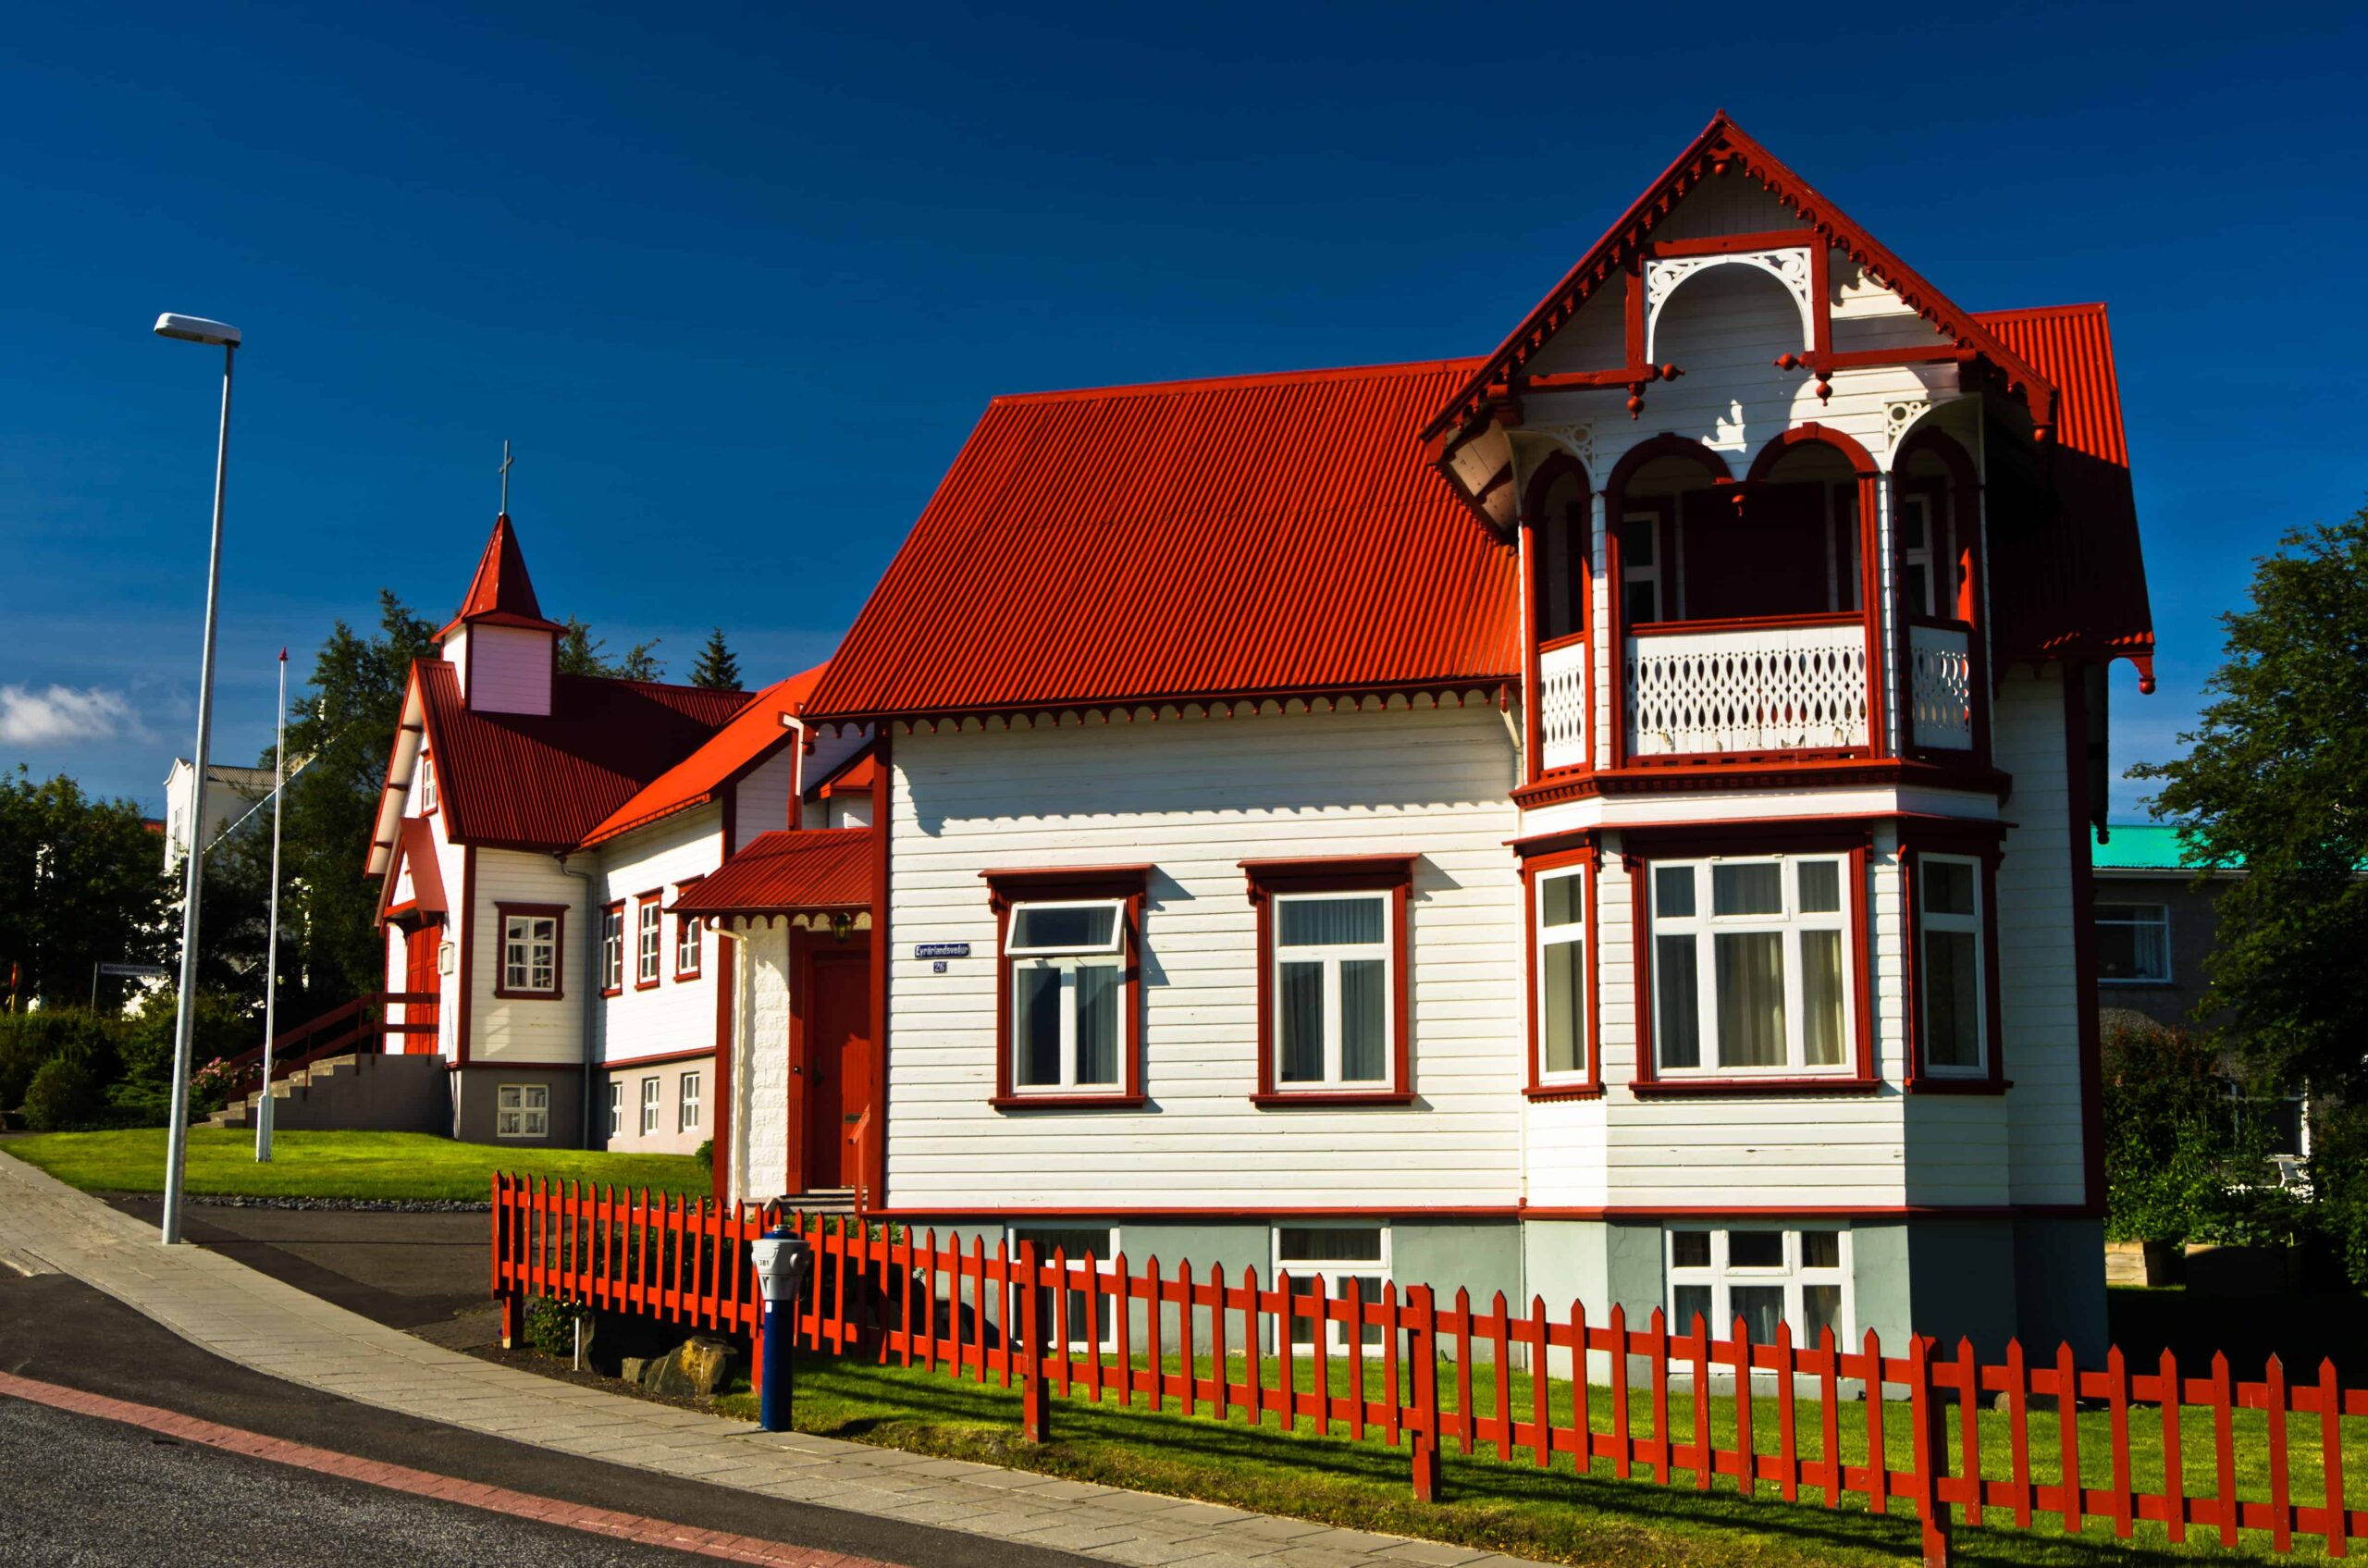 unique house in AKureyri city in north Iceland